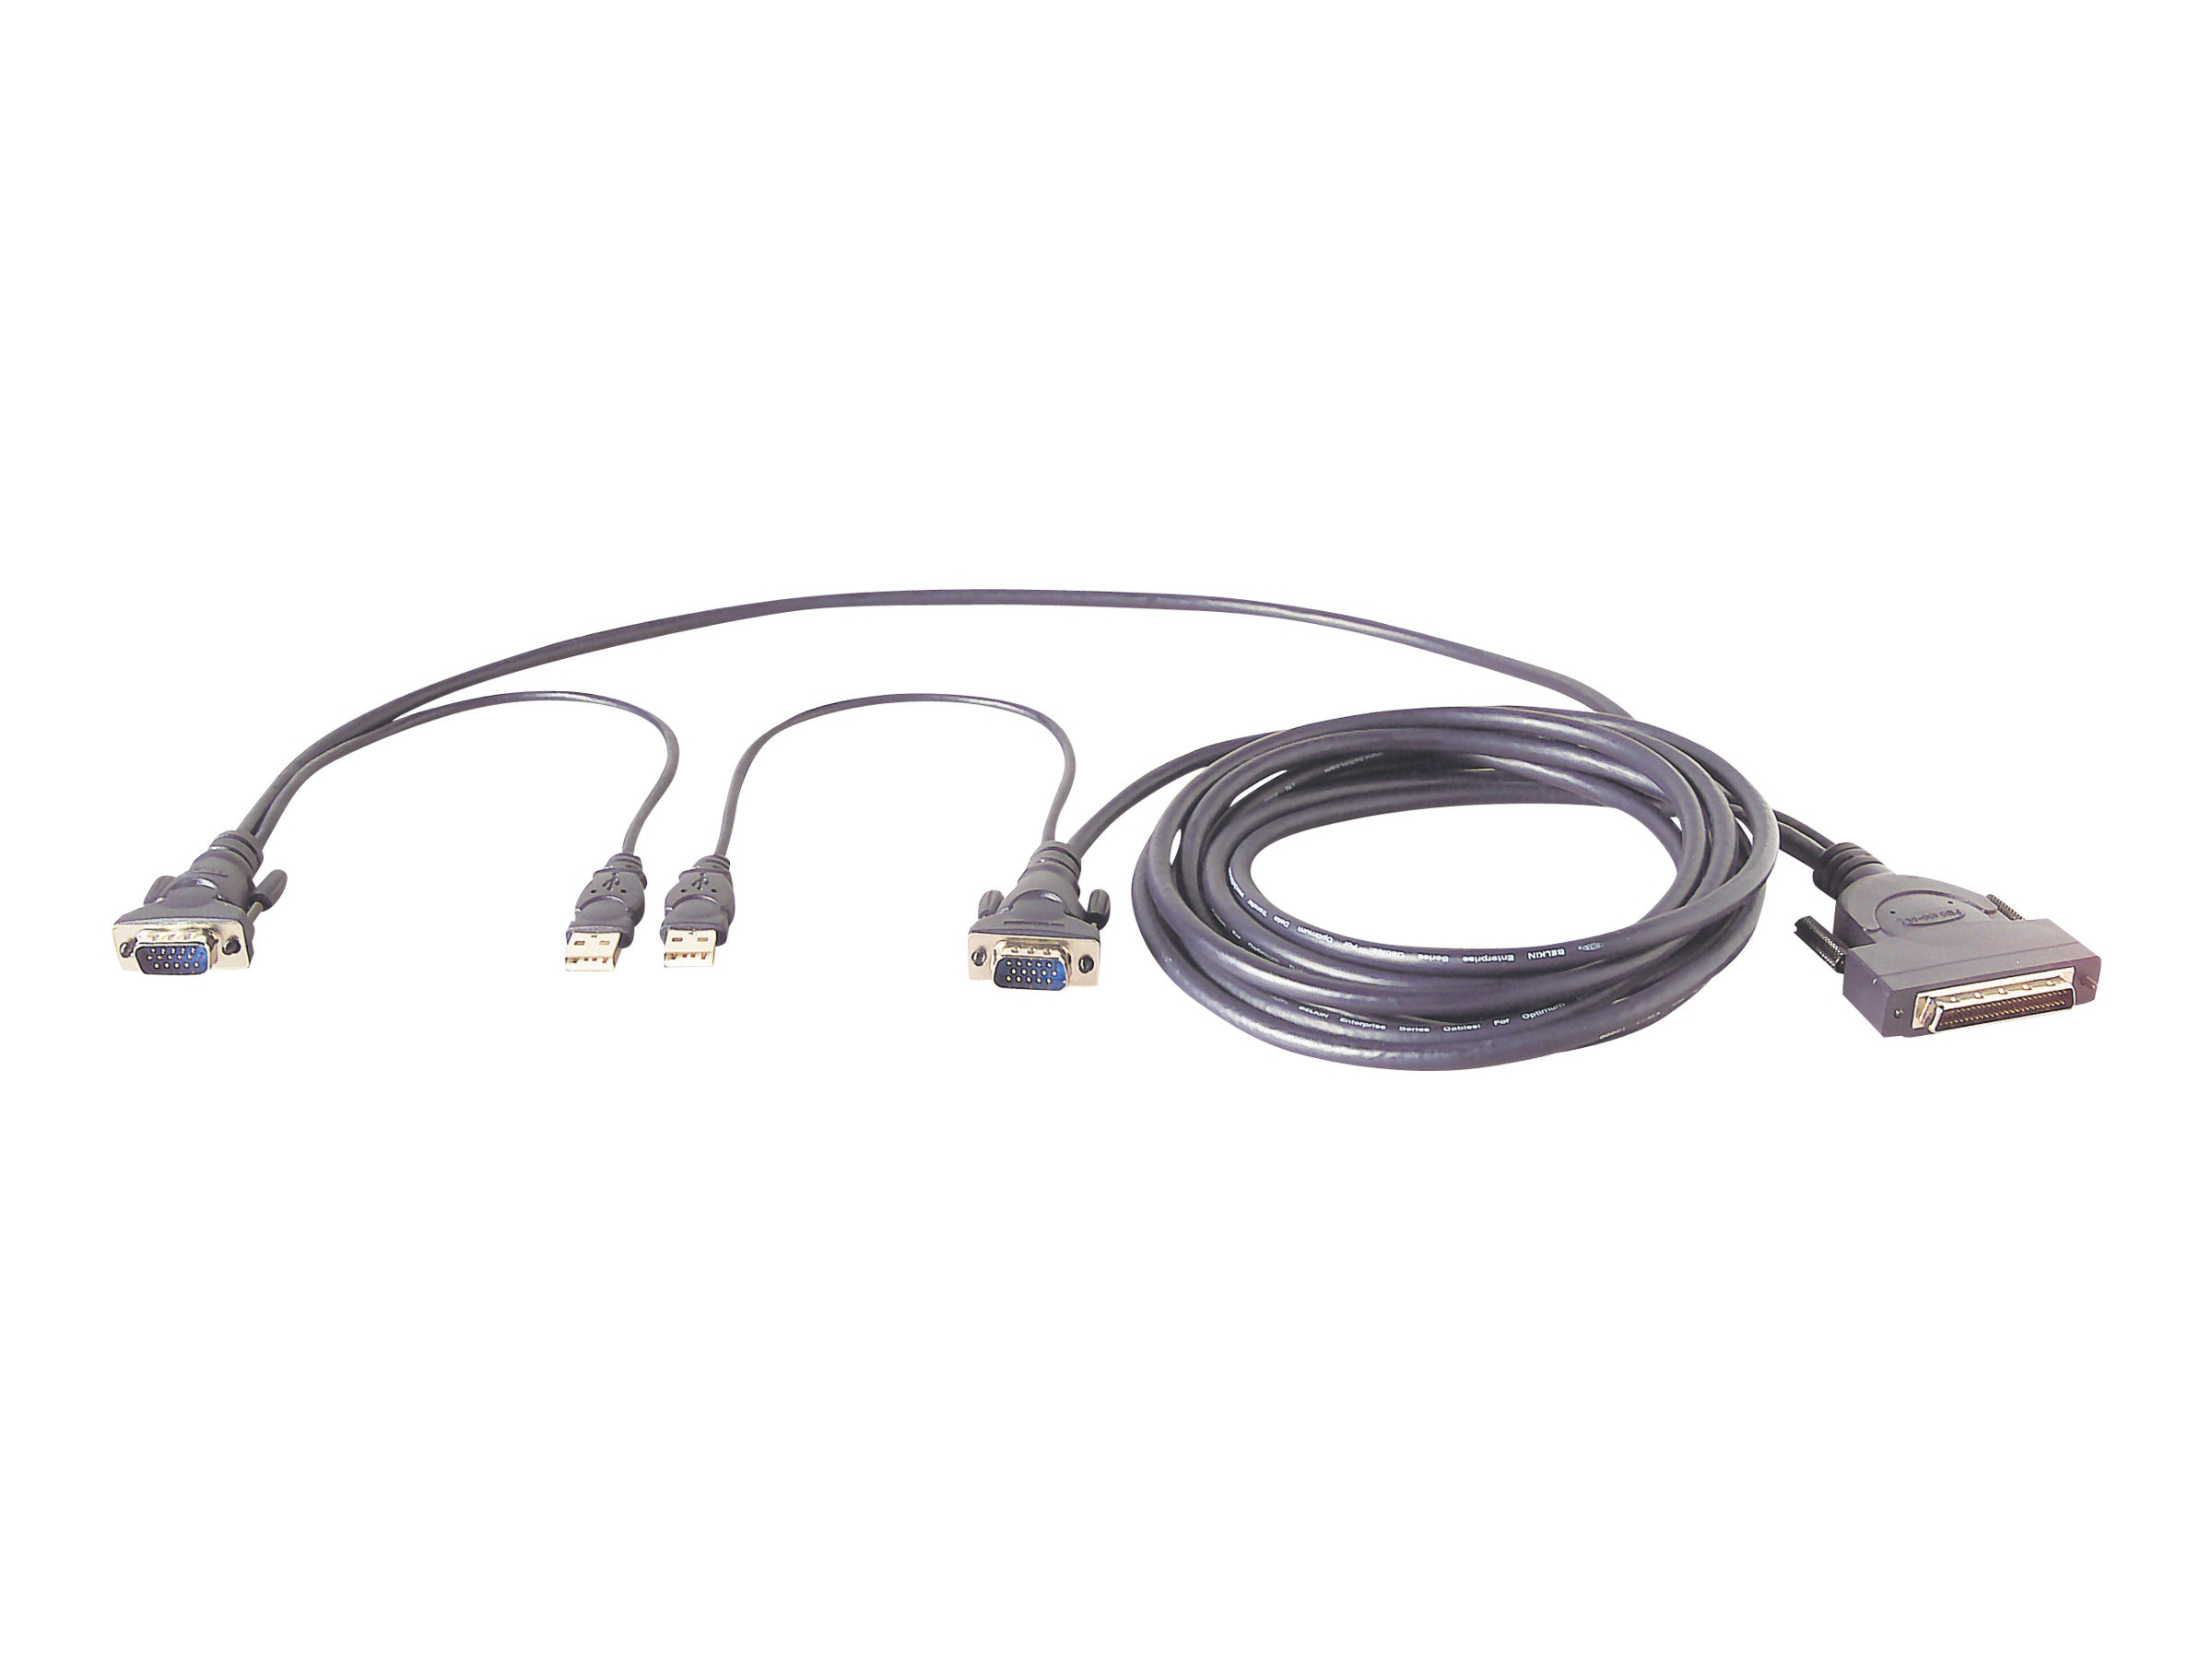 Belkin OmniView Enterprise Series Dual-Port USB KVM Cable, 12ft (Bulk Packaging), F1D9401-12, 364655, Cables